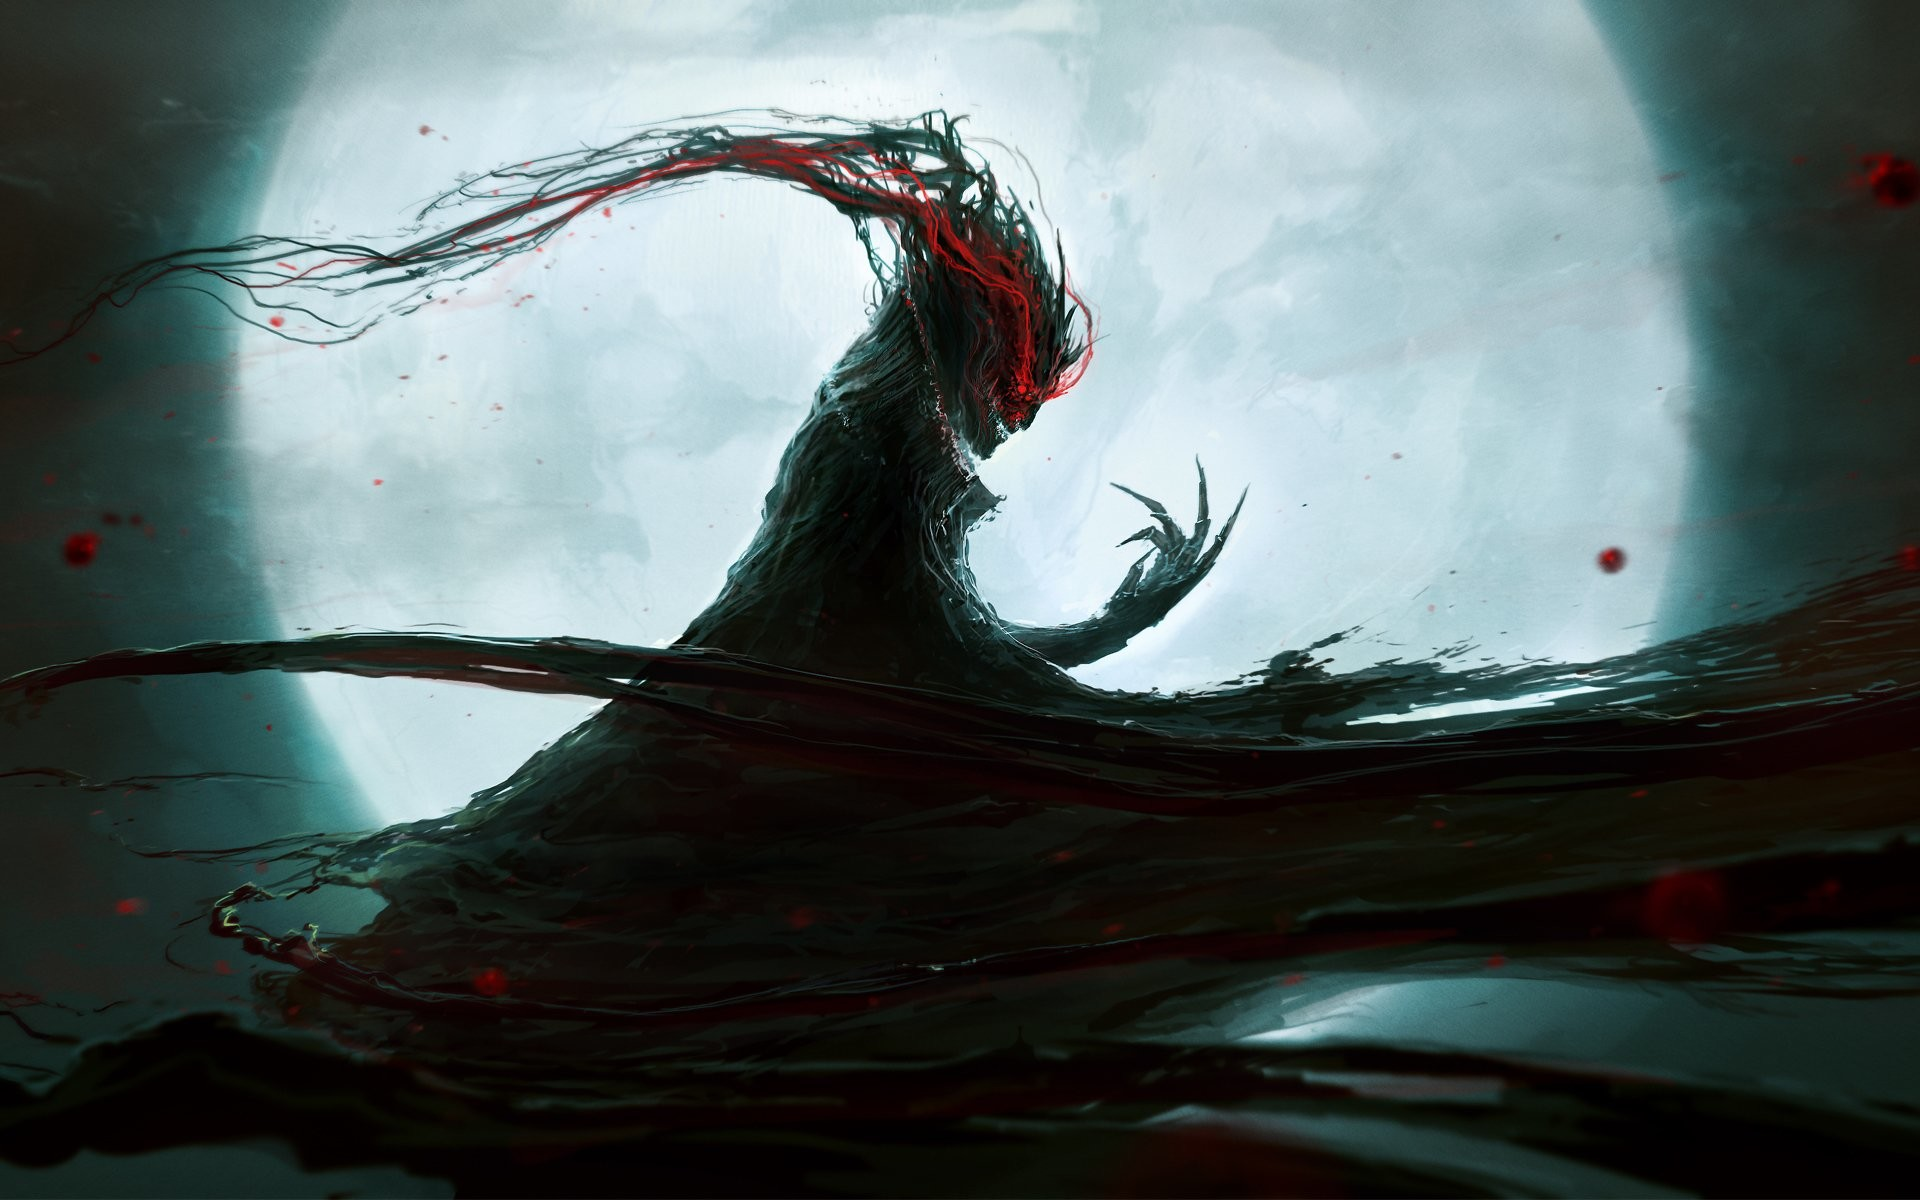 1920x1080 New Scary WallPapers Dark Horror HD Backgrounds The Art 1920A 1080 Wallpaper 48